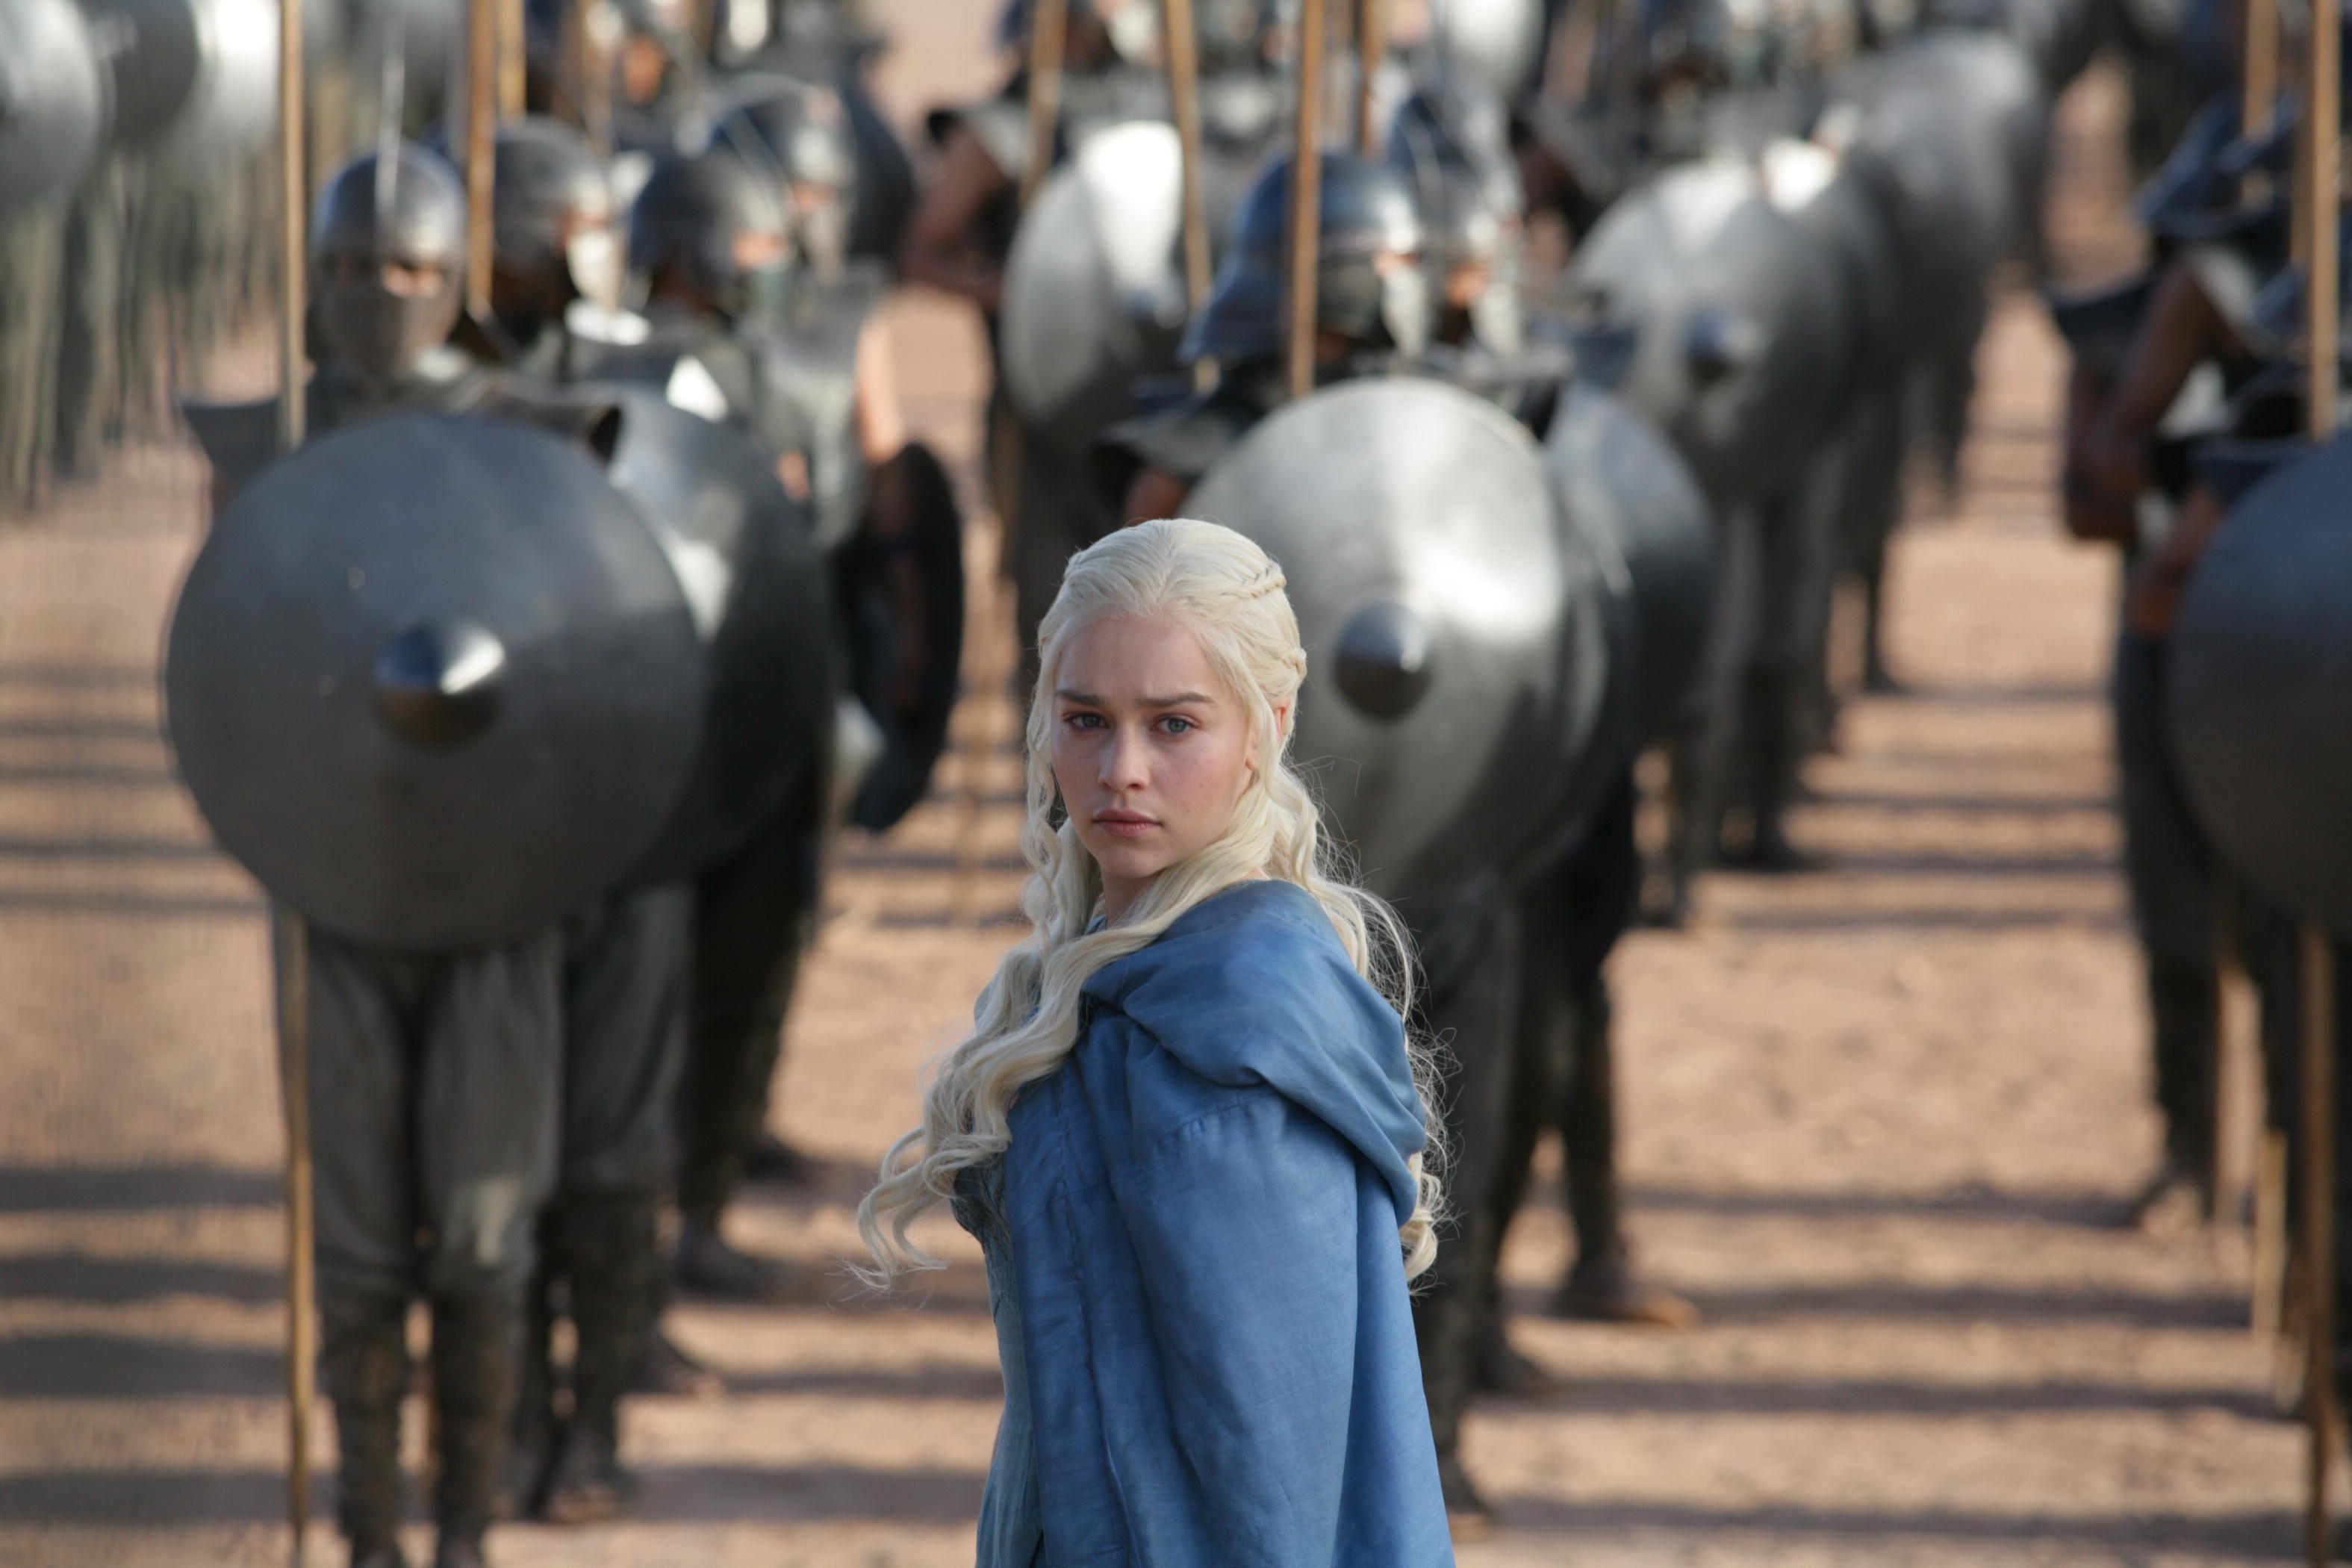 Emilia Clarke's Body Double On 'Game Of Thrones' Is Drop Dead Wynik na żywo bet at home bon bet at home 5 euro Gorgeous ...